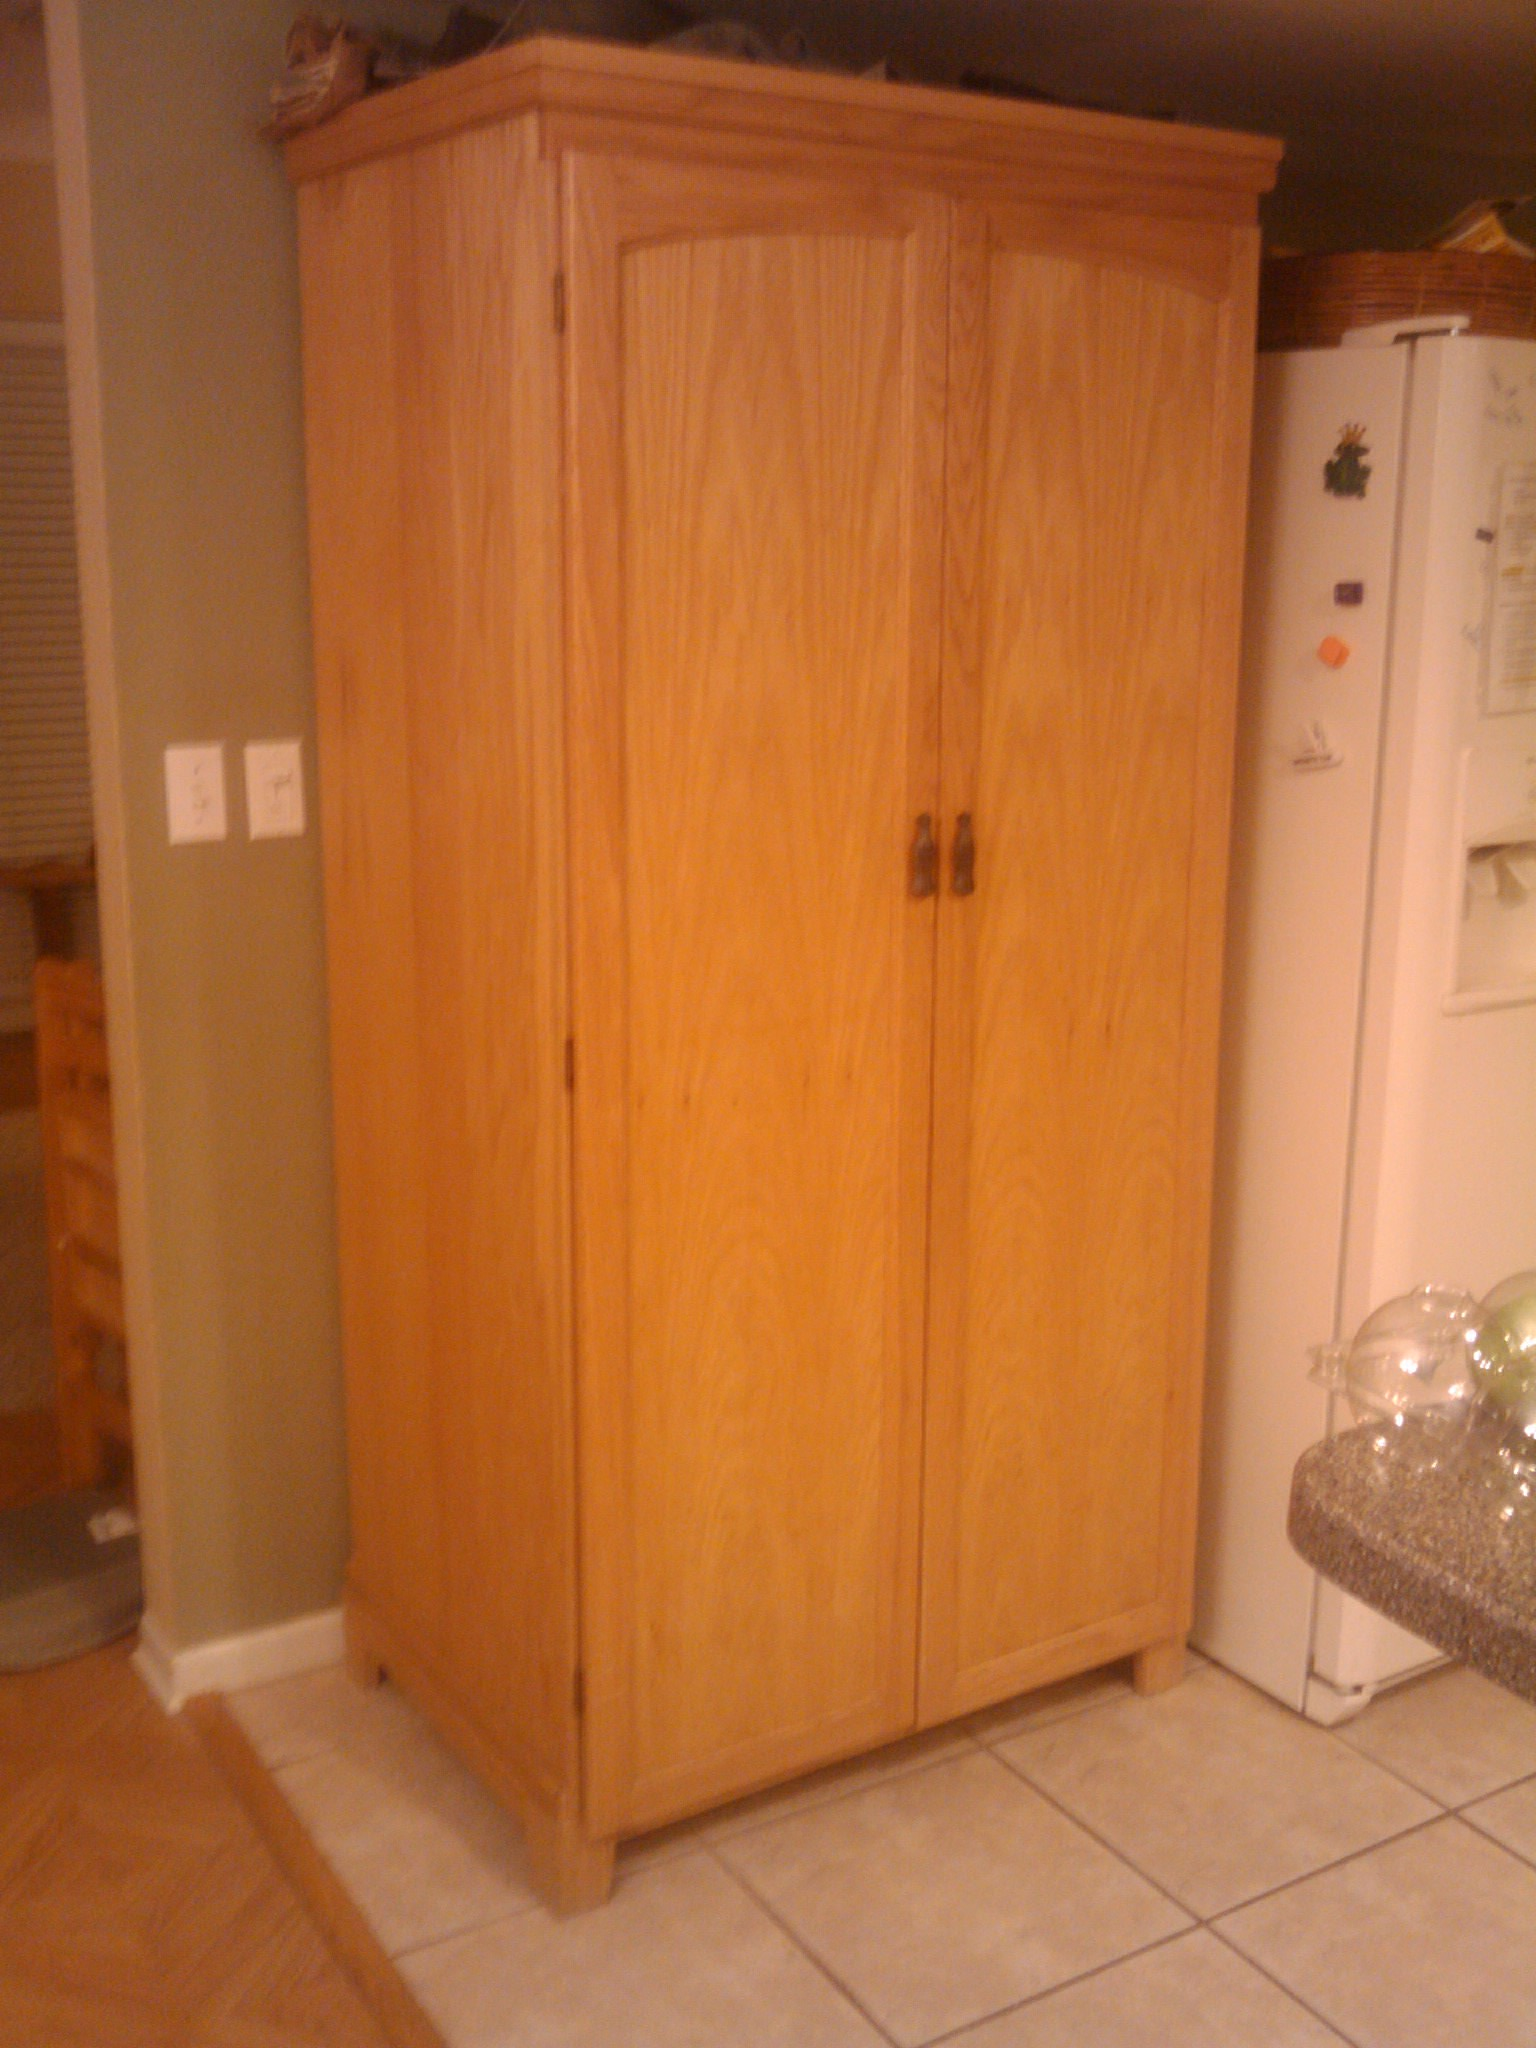 Wooden Kitchen Cabinet Doors Nz Pantry Cabinet: Freestanding Pantry Cabinets With Kitchen